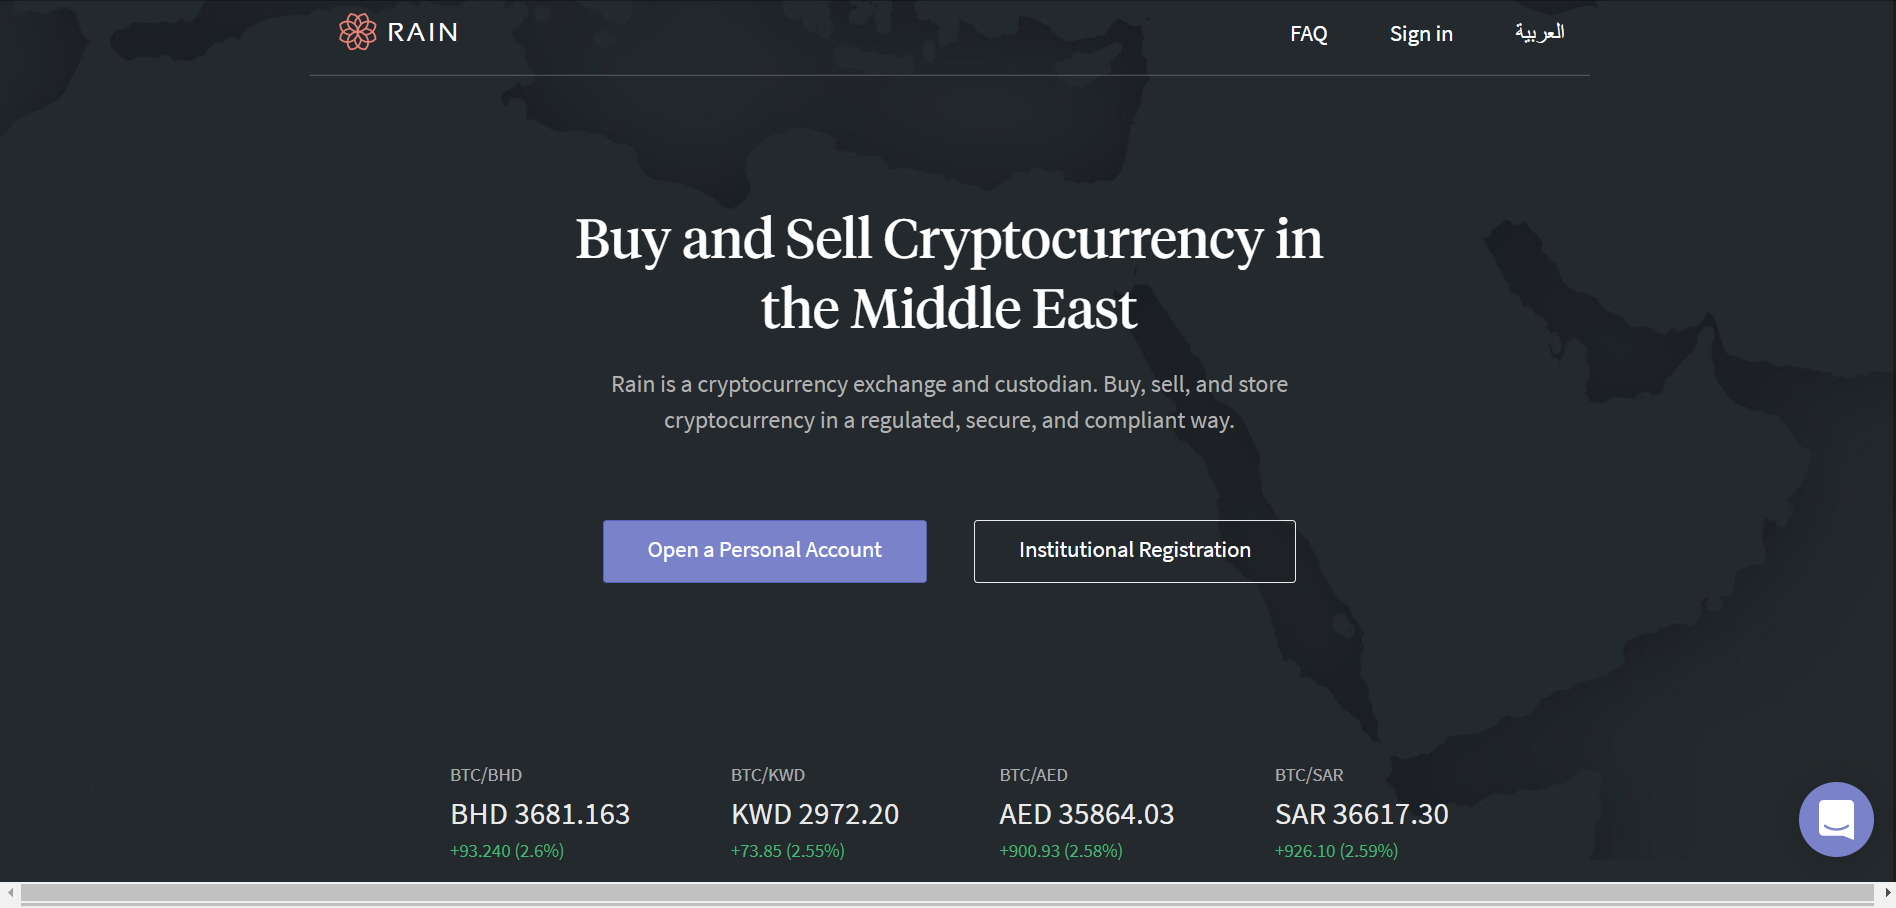 Rain' is Live — The Middle East's First Licensed Crypto Exchange